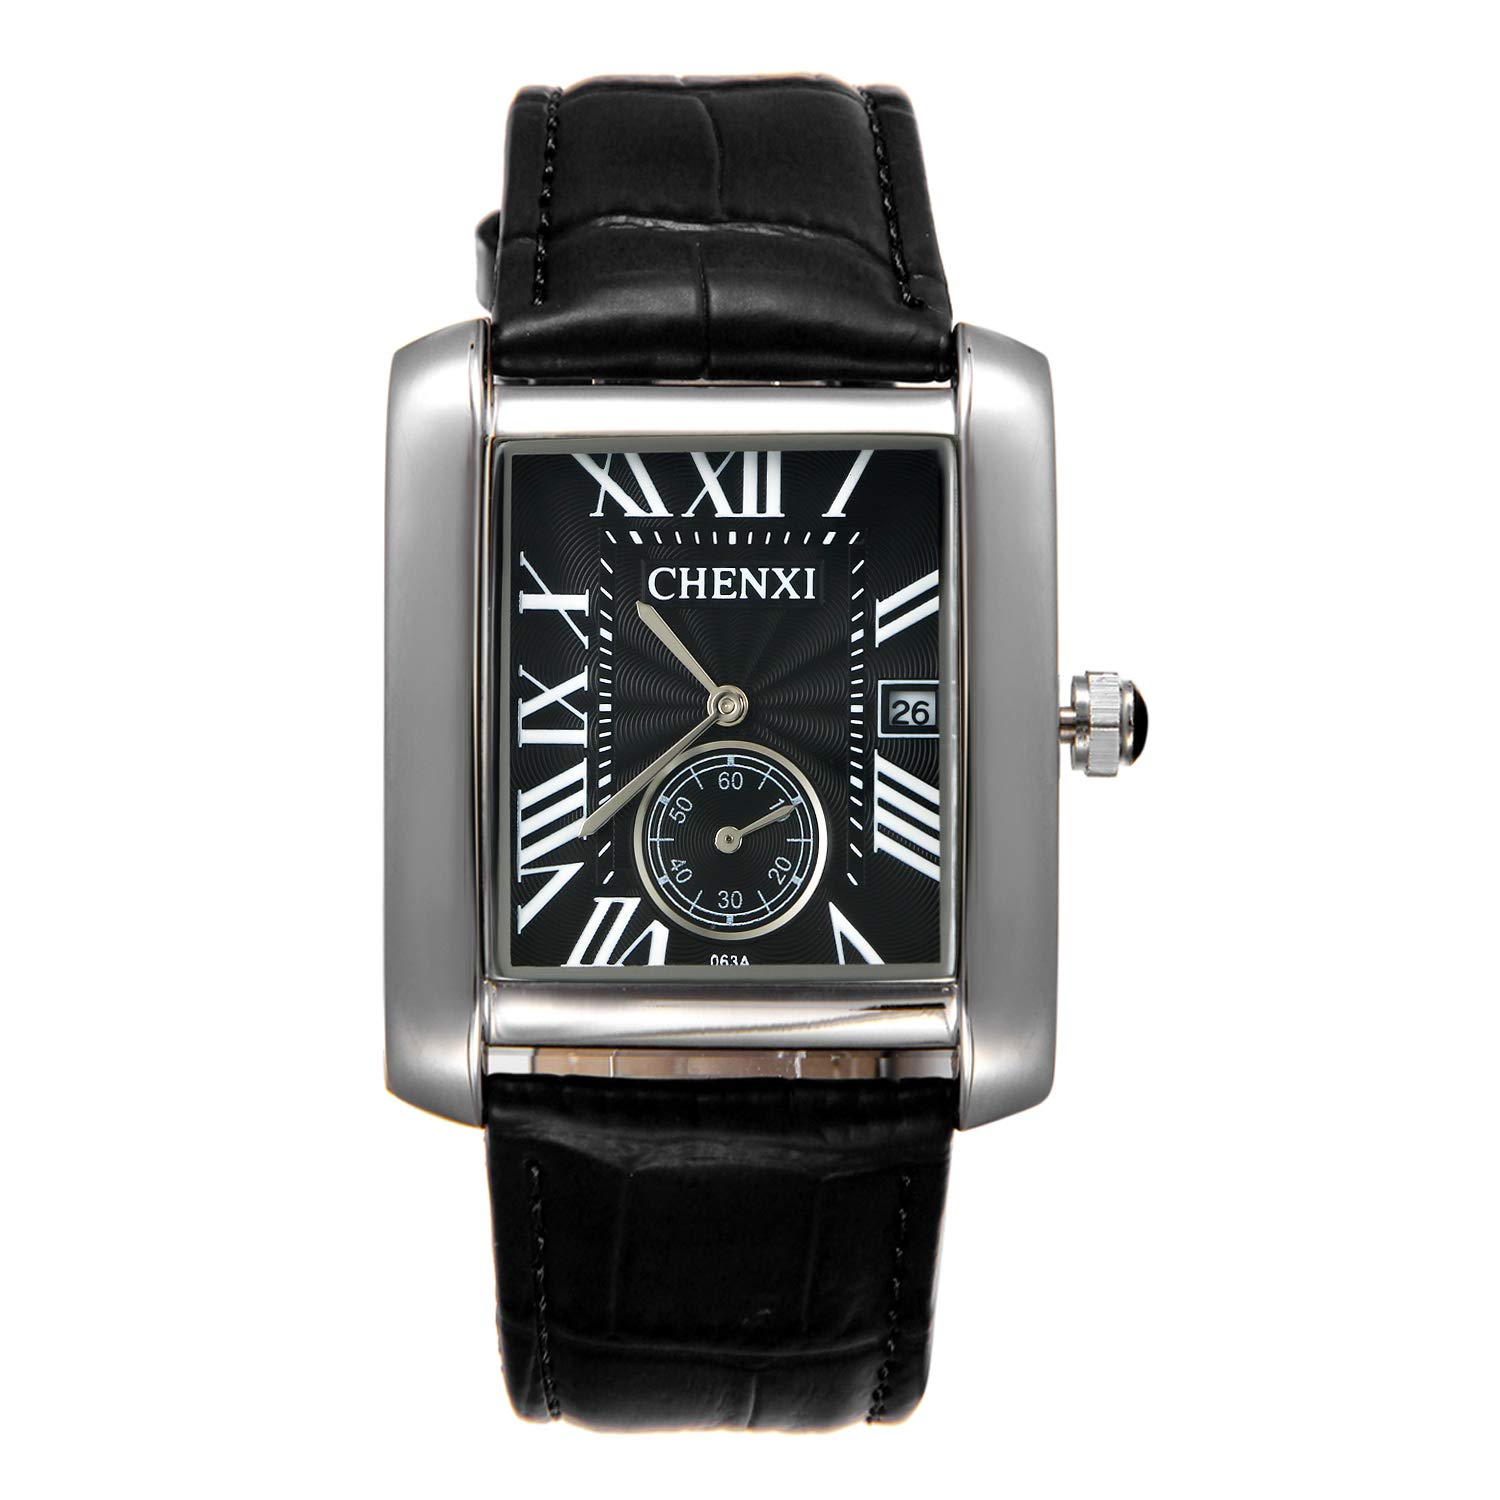 4c30ad4ee Amazon.com: Men's Retro Square Face Japan Quartz Calendar Watch Black  Leather Independent Second Dial Dress Wrist Watches: Watches